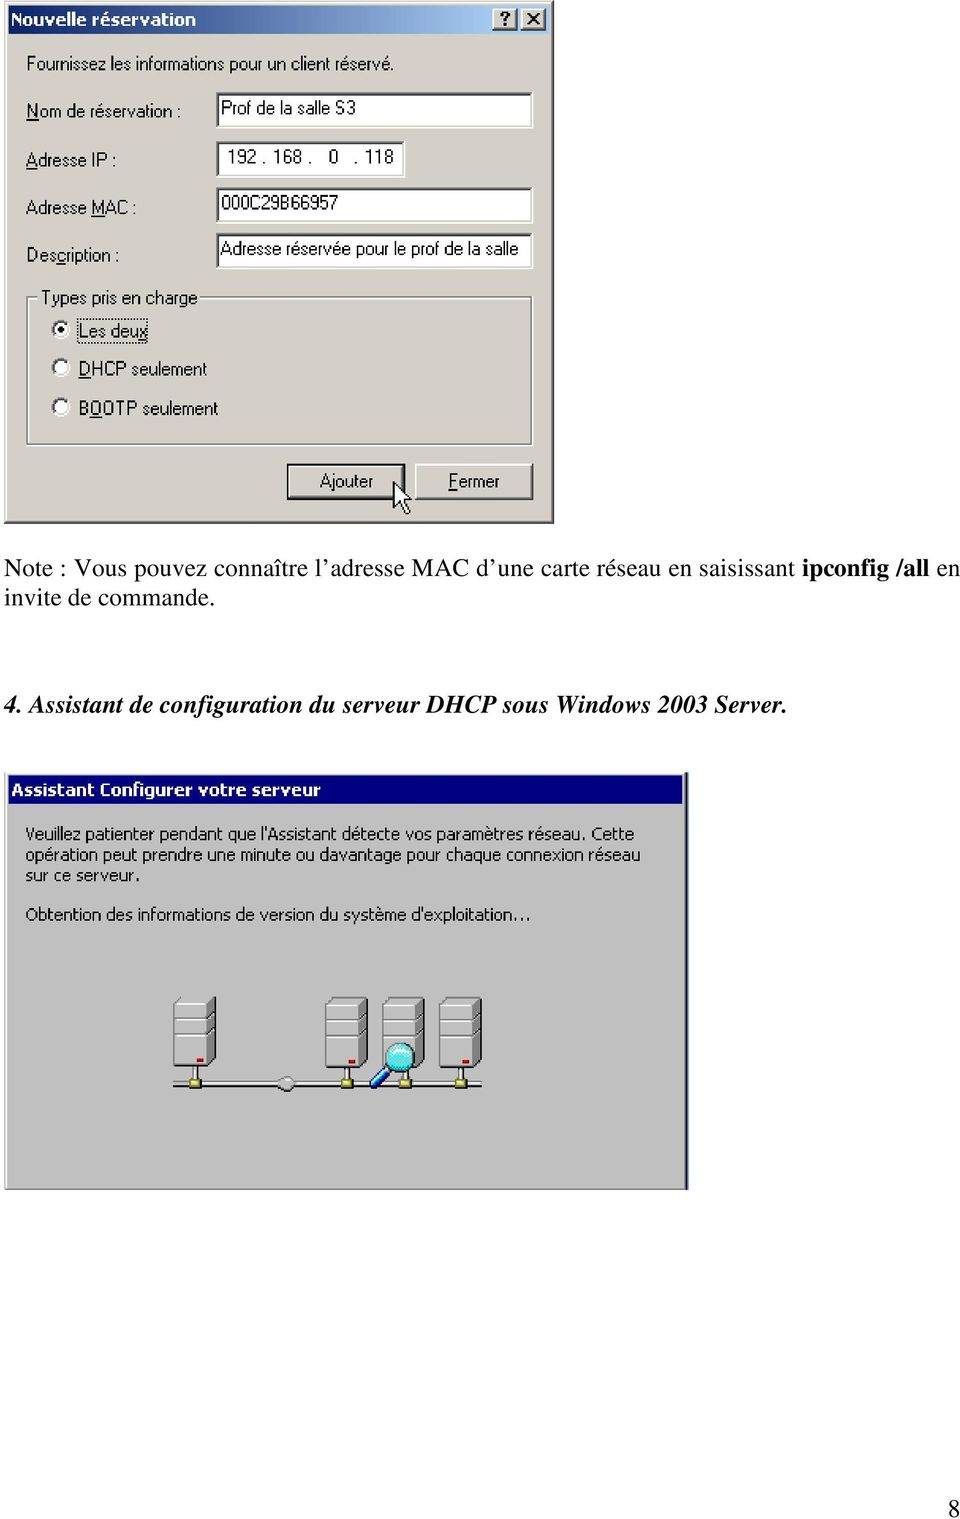 Assistant de configuration du serveur DHCP sous Windows 2003 Server.